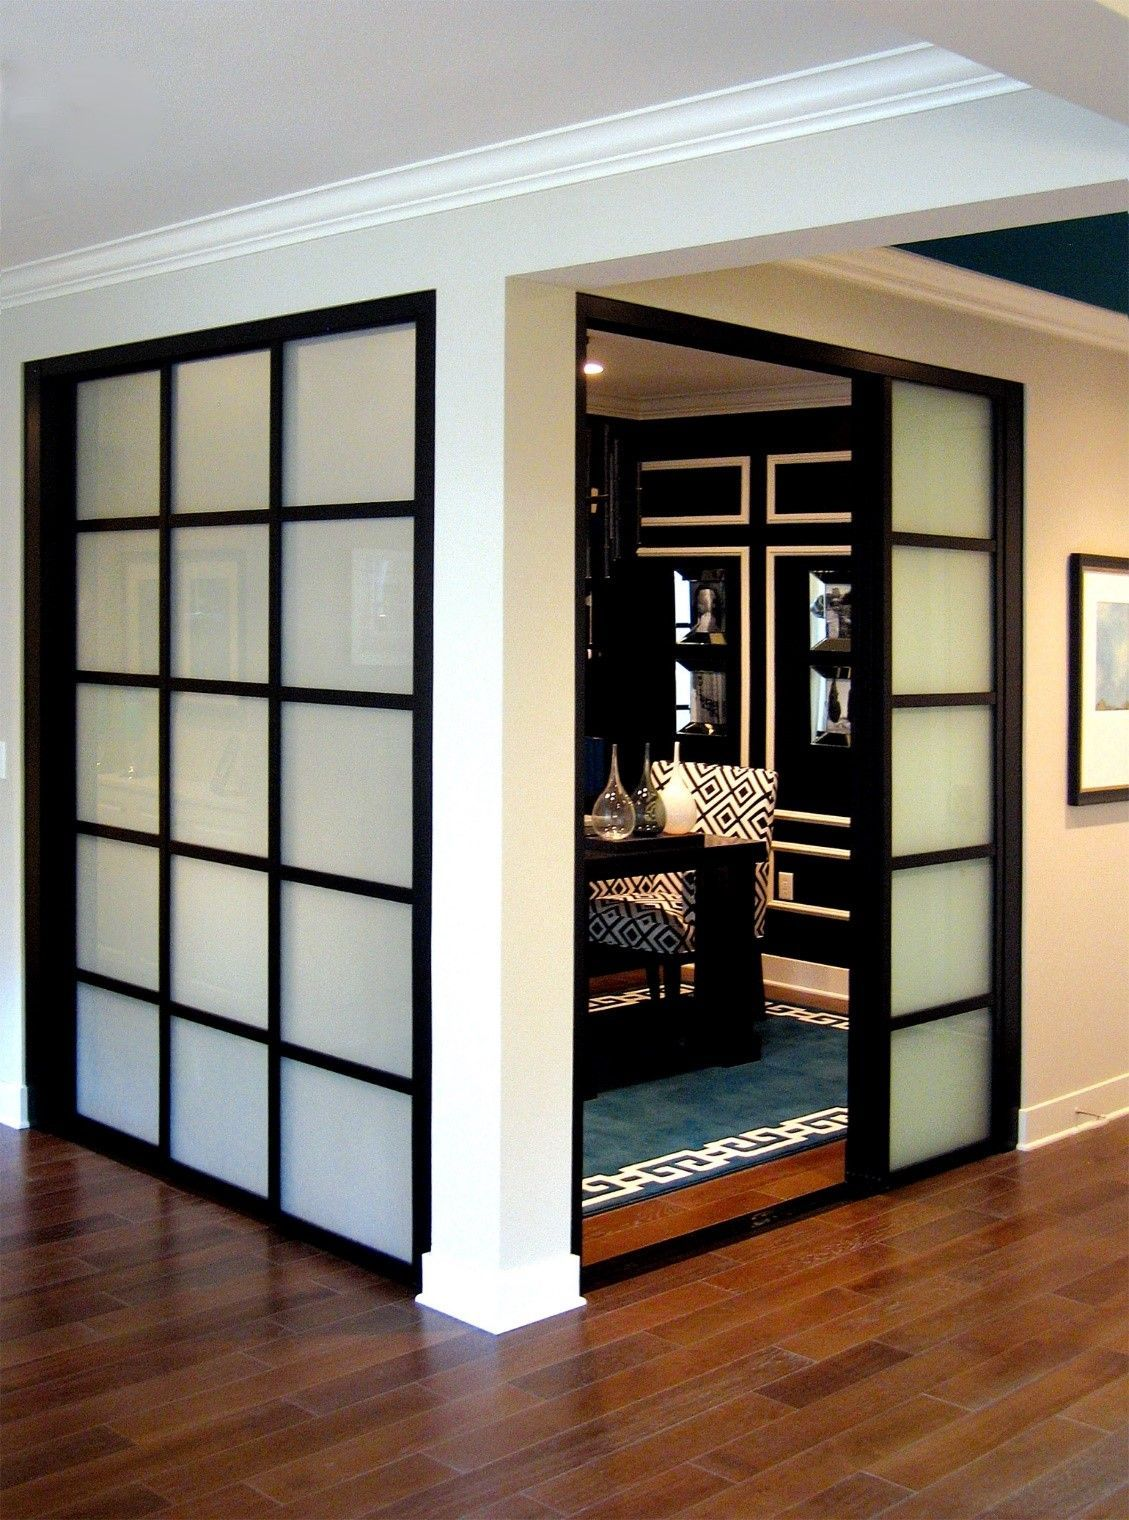 Wall Slide Doors With Laminated Glass Black Frame Inspirational